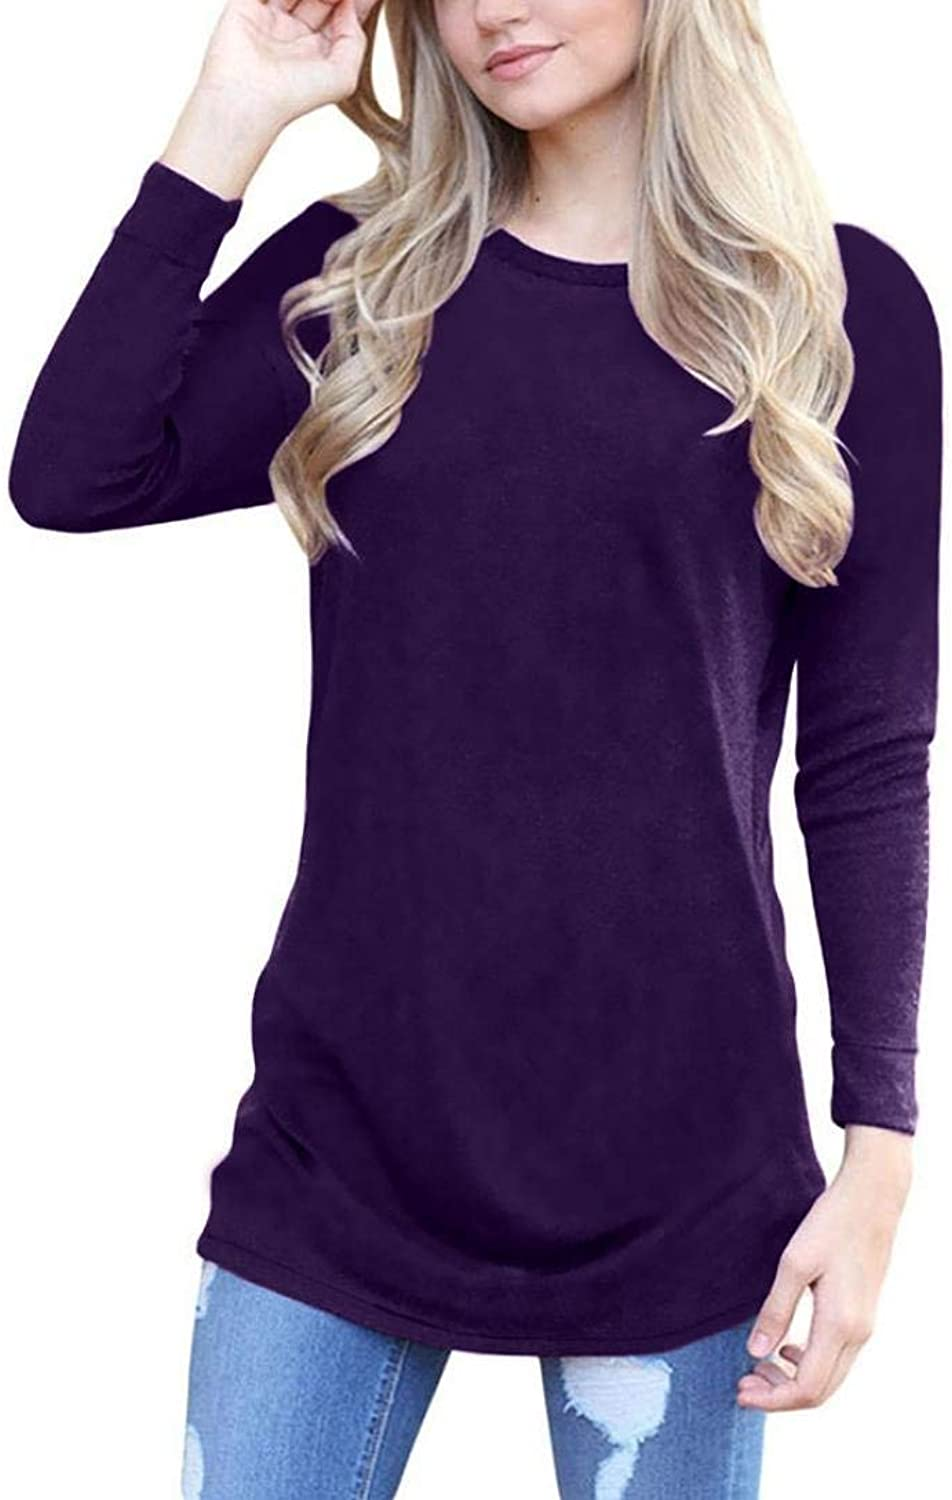 Ladies Sweater Womens Winter Fleece Casual Long Sleeve Vintage Knitted Sweater Long Blouse Warm Solid color Long Section Wild Tight for Women (color   purplet, Size   S)